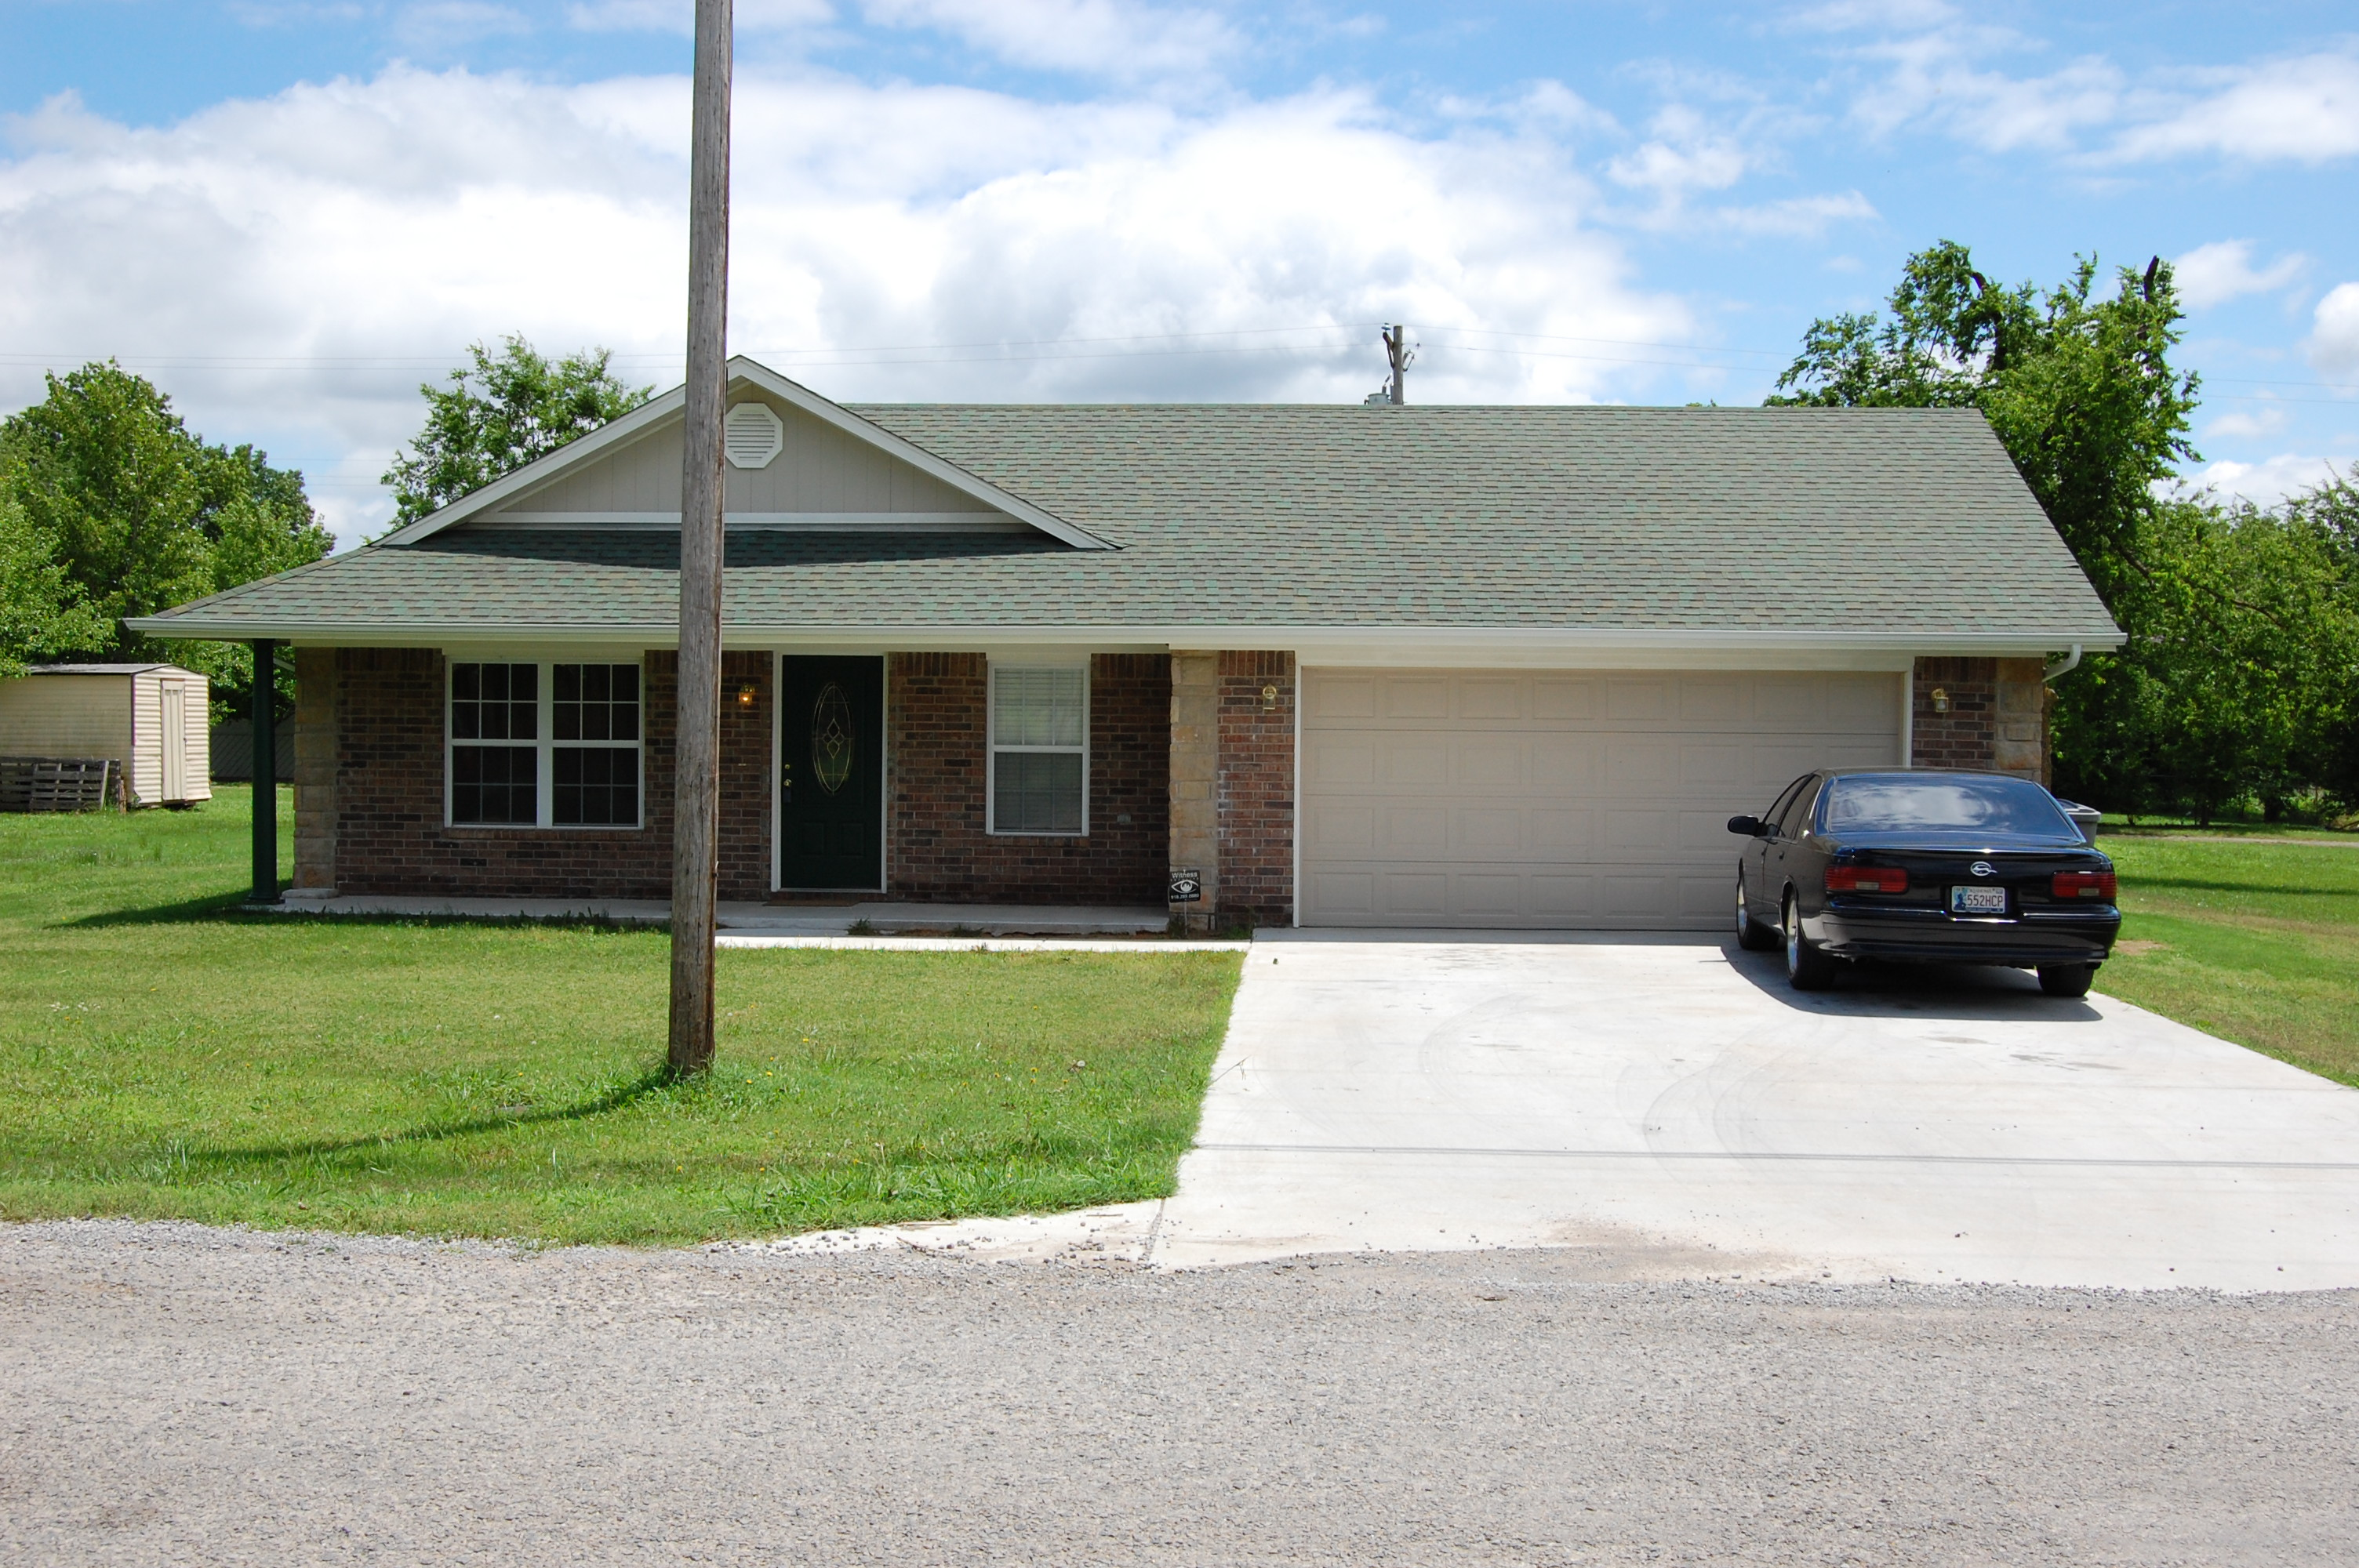 108 W Duncan Road, Haskell, Oklahoma 74436